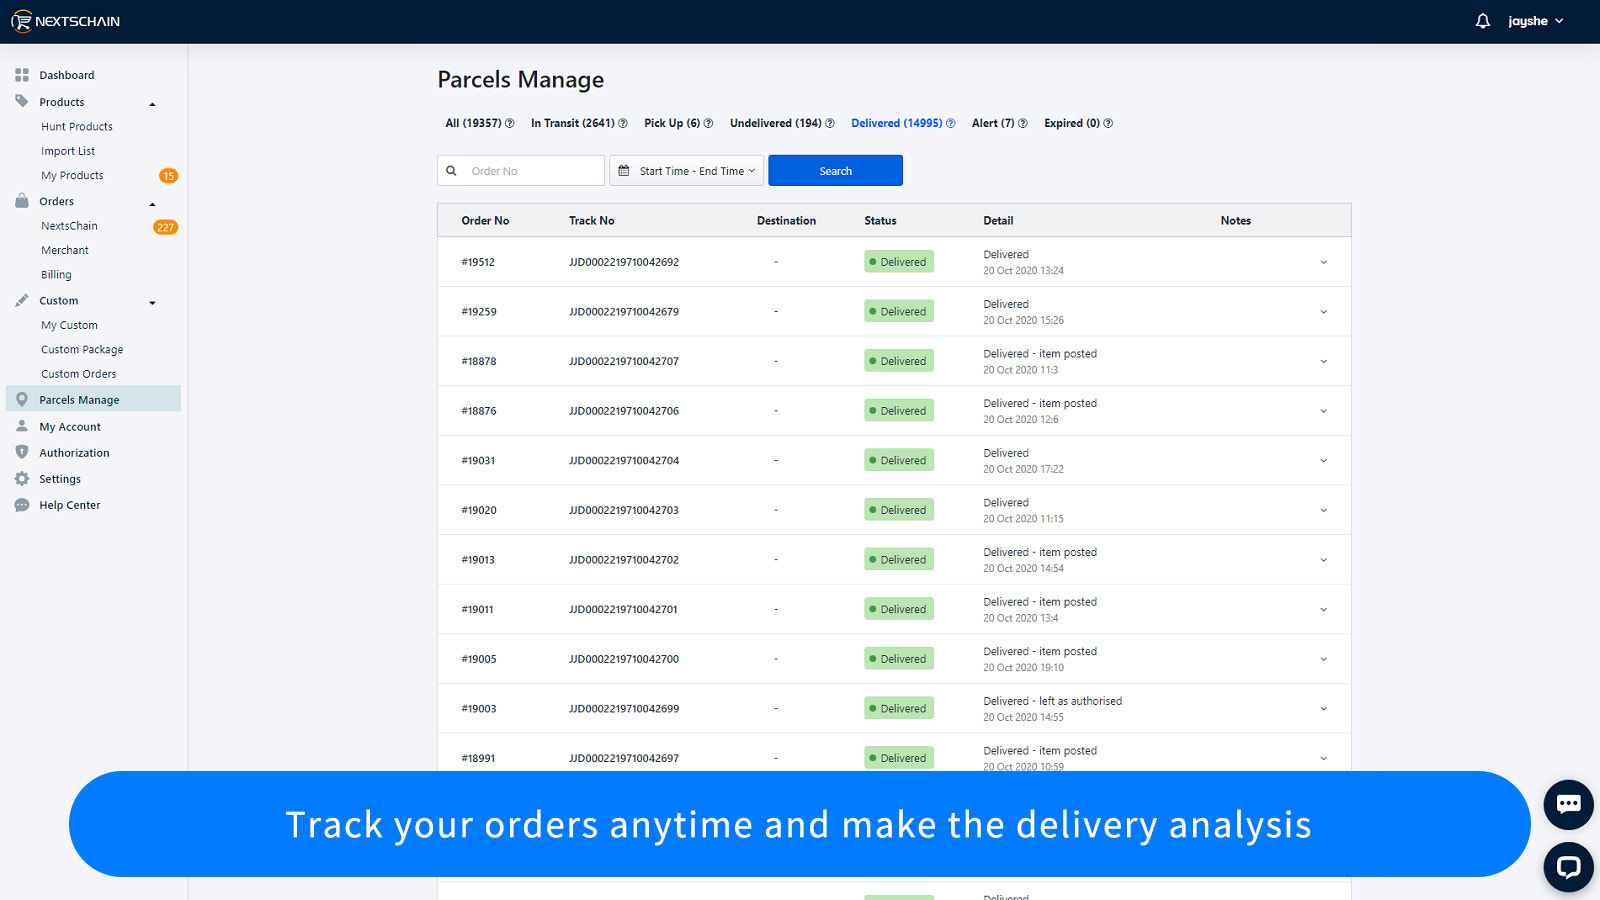 Track your orders anytime and make the delivery analysis